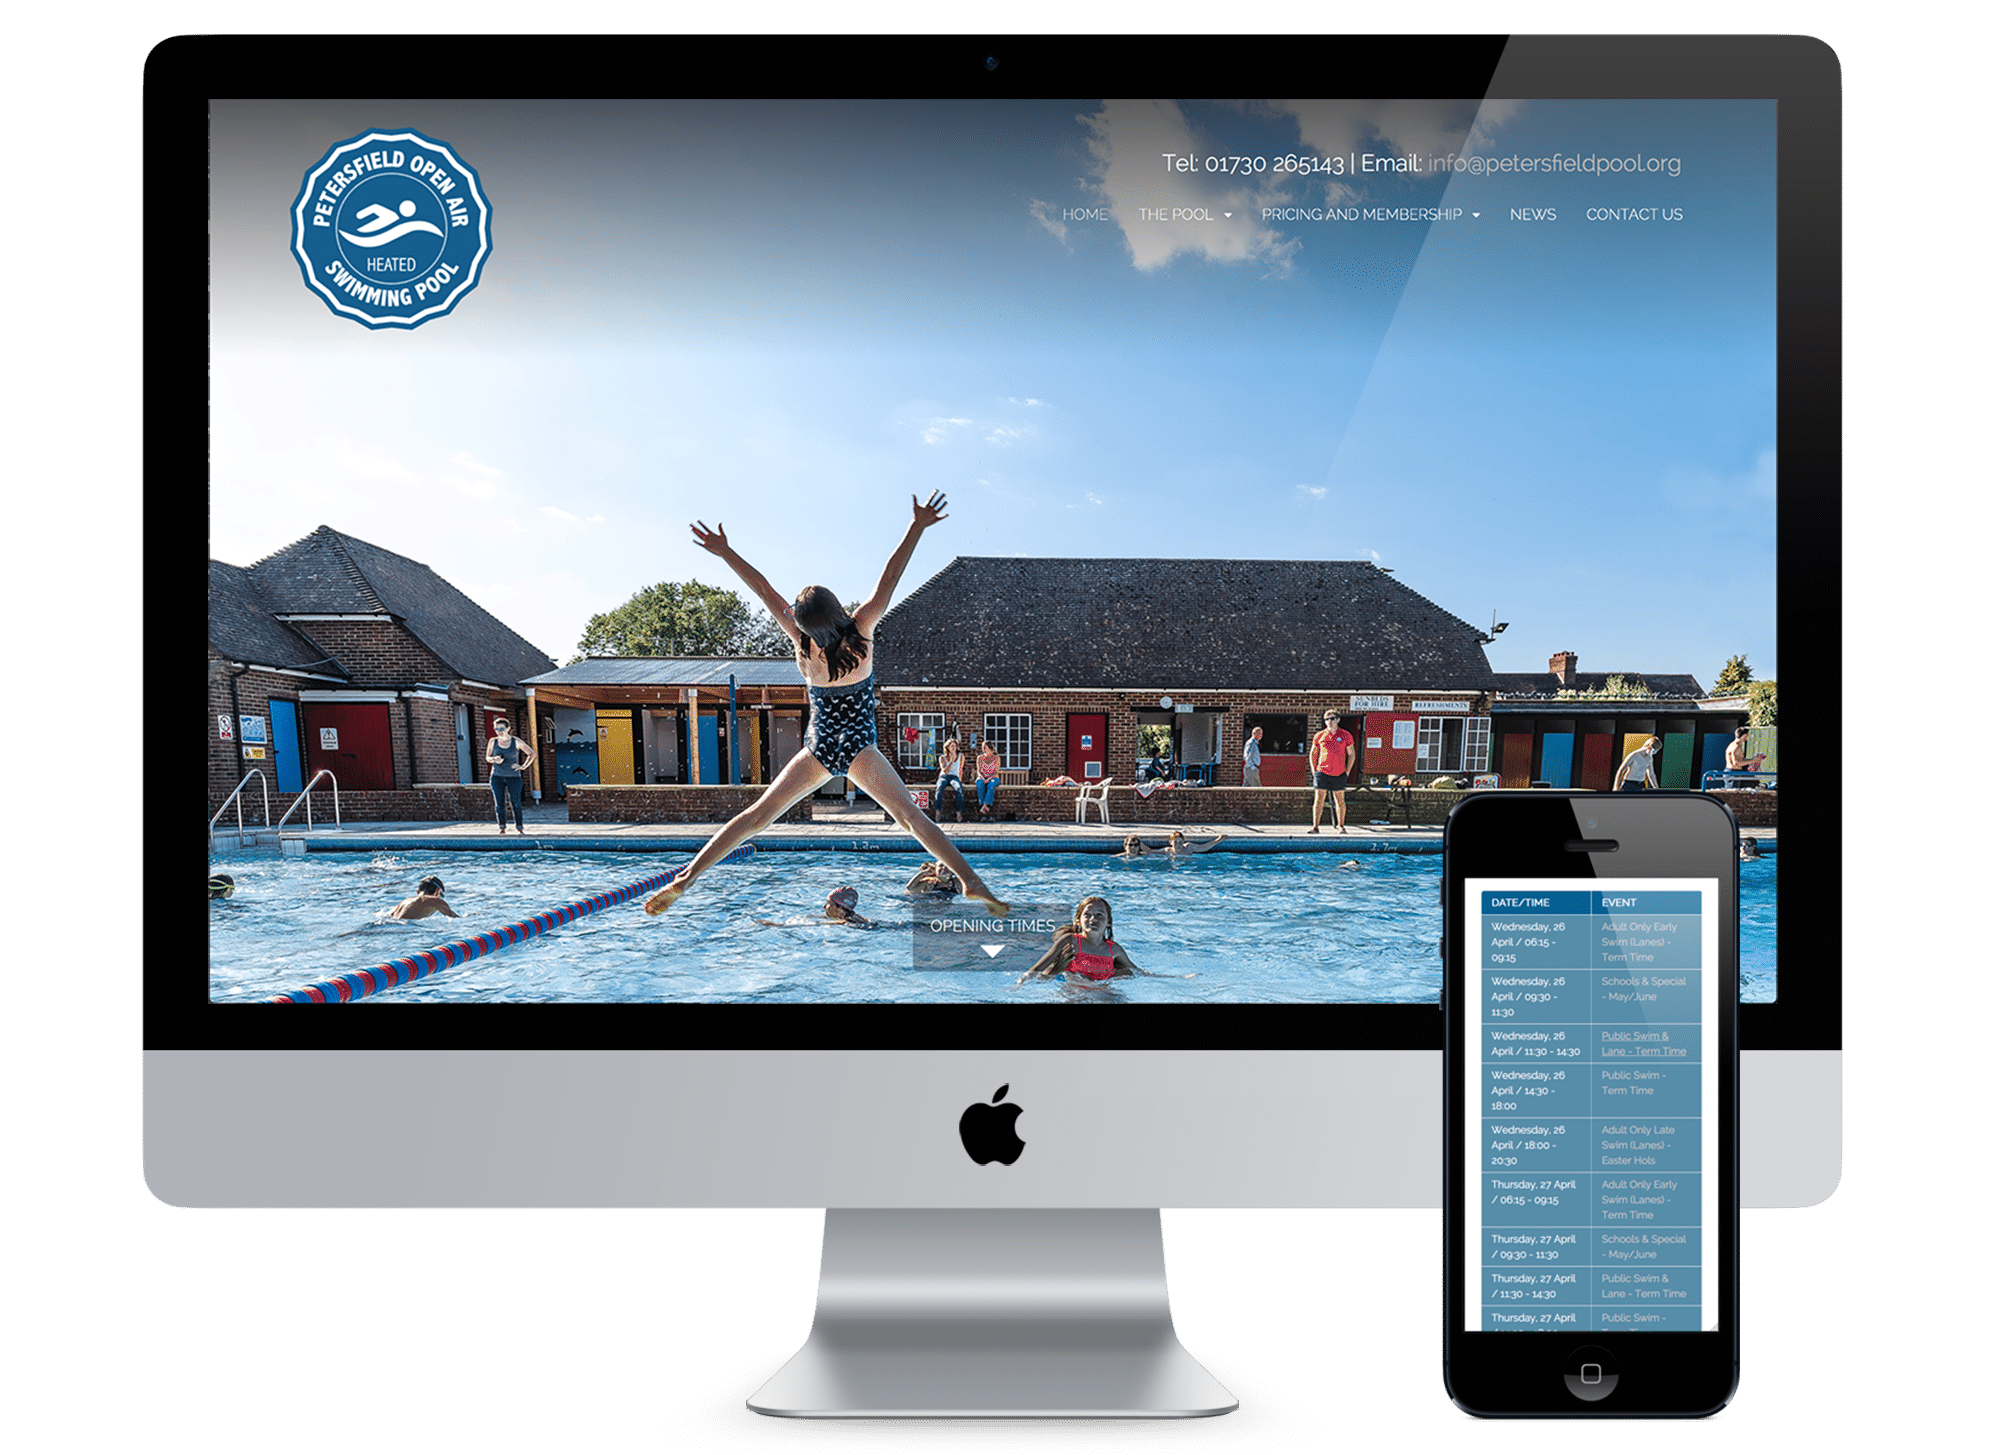 Petersfield Pool Website